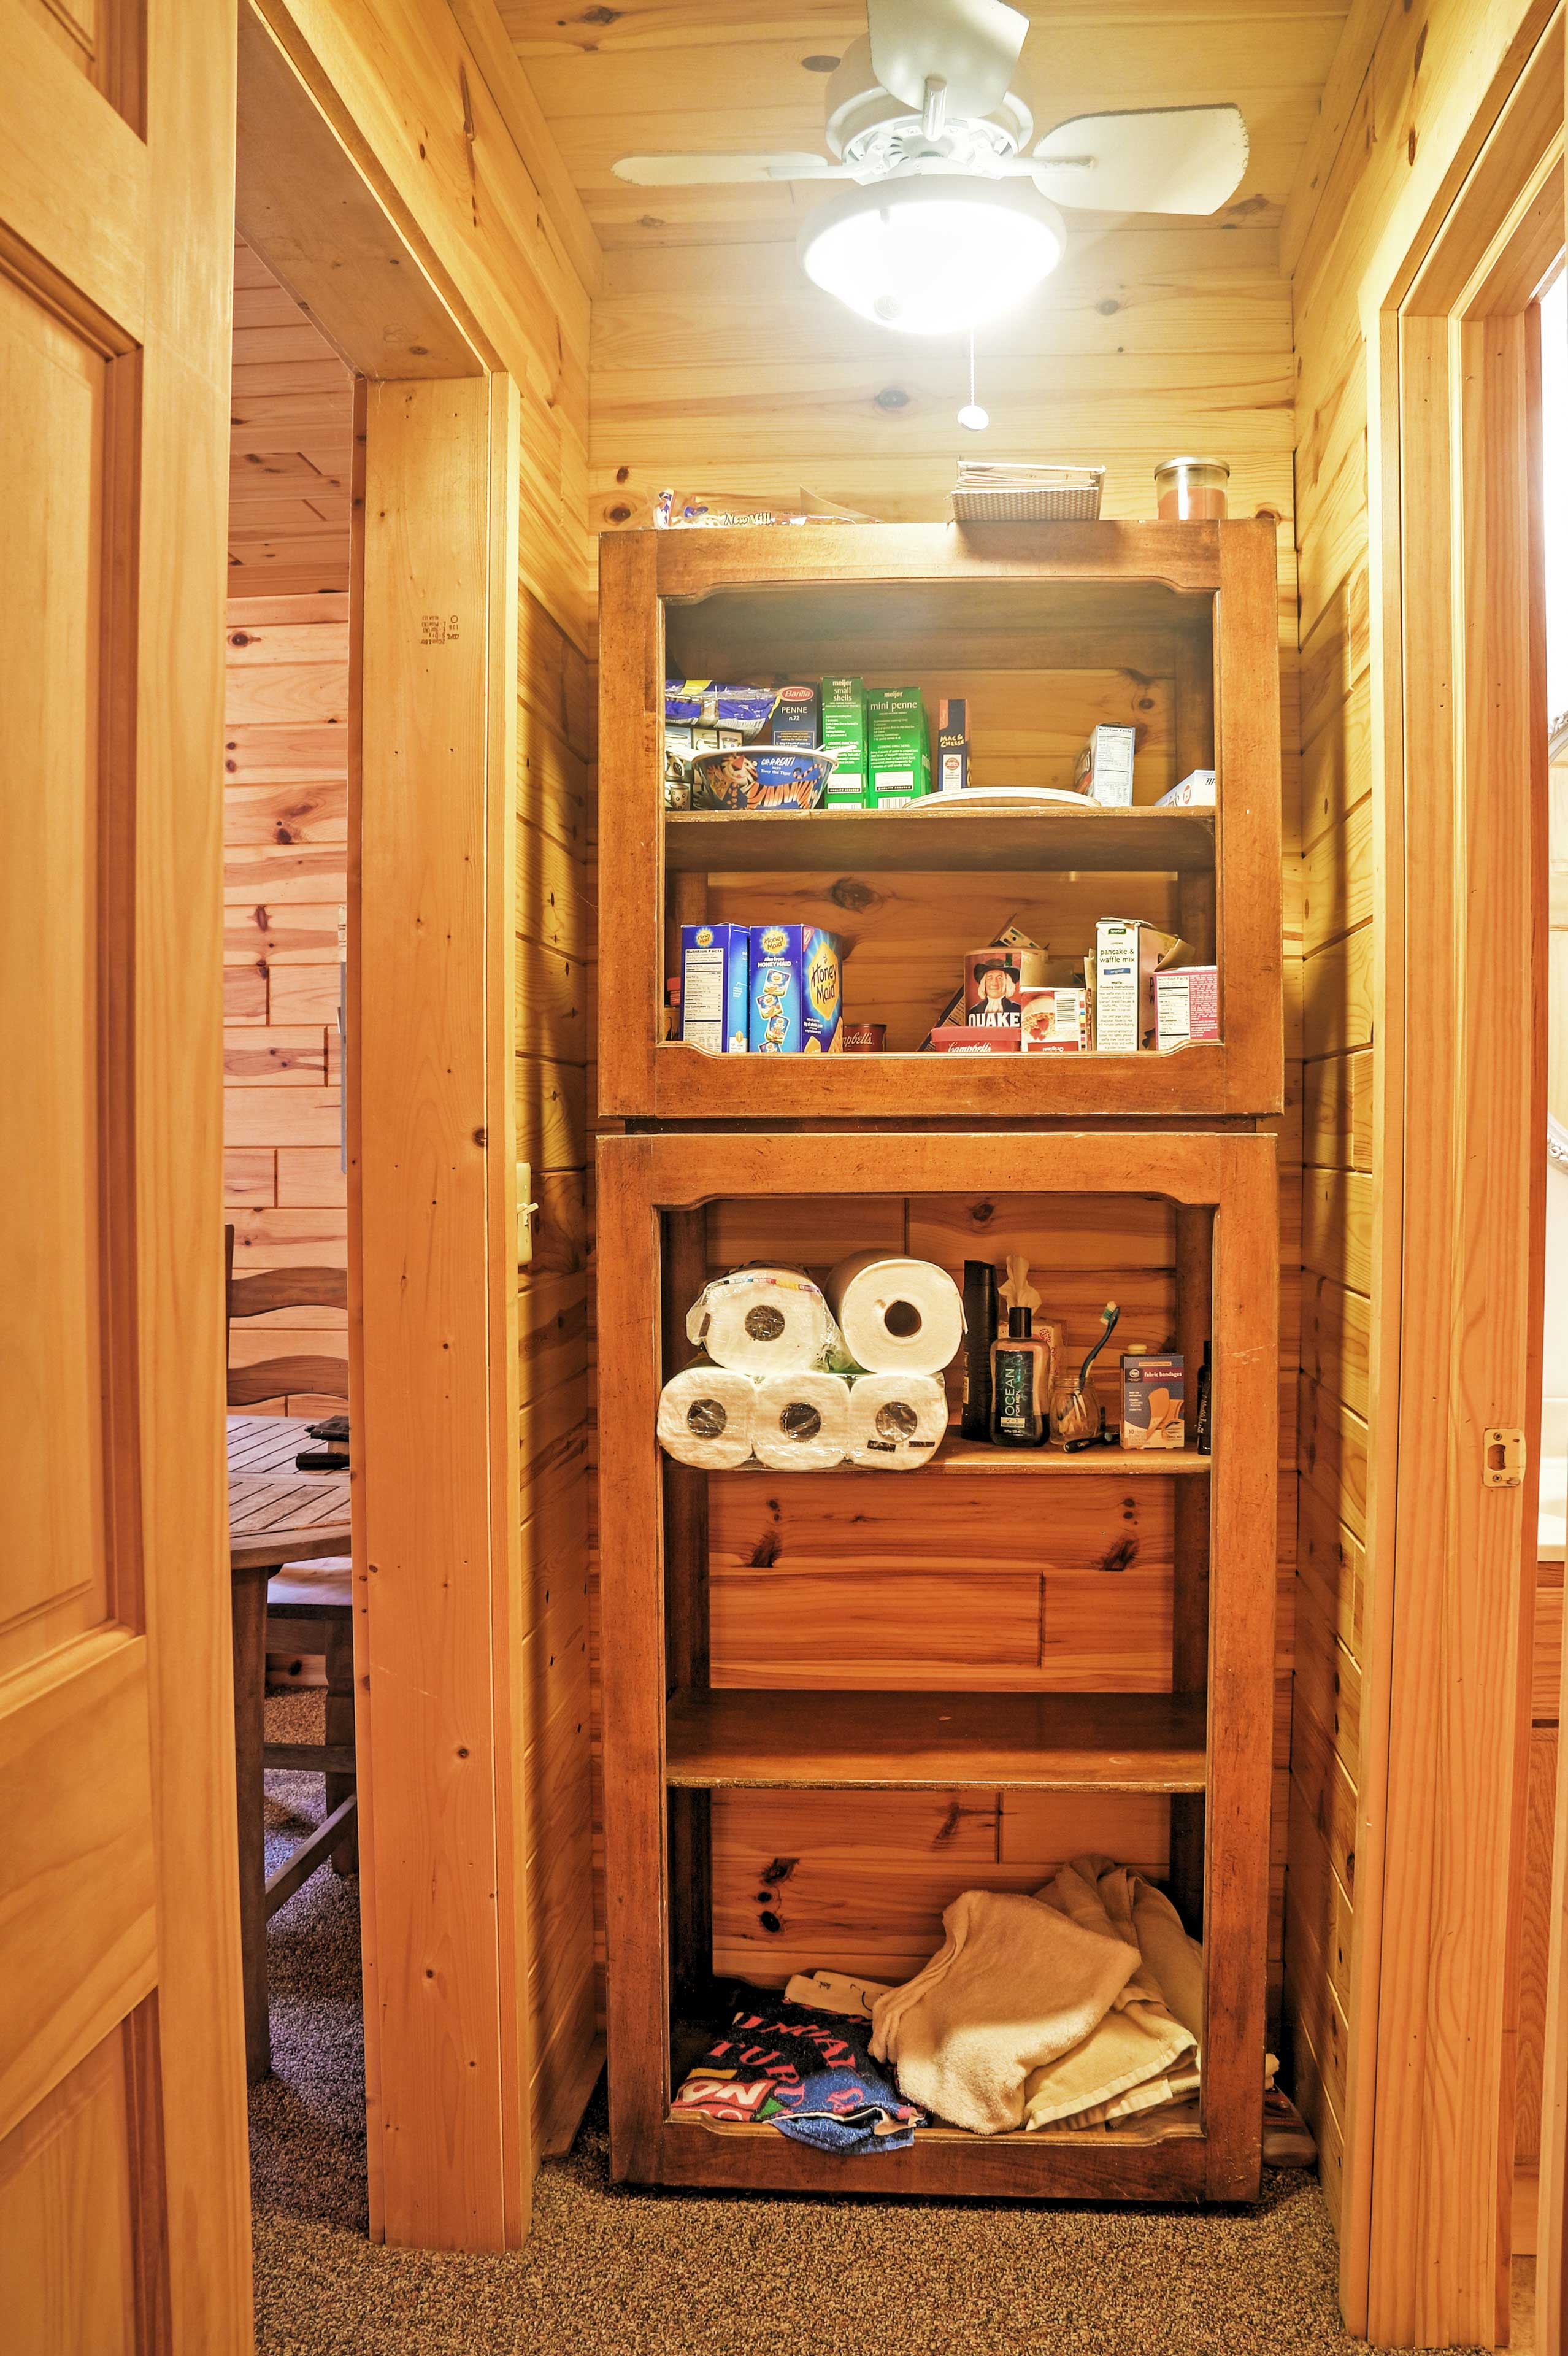 There's plenty of storage space and various amenities for you to use at this fantastic cabin!